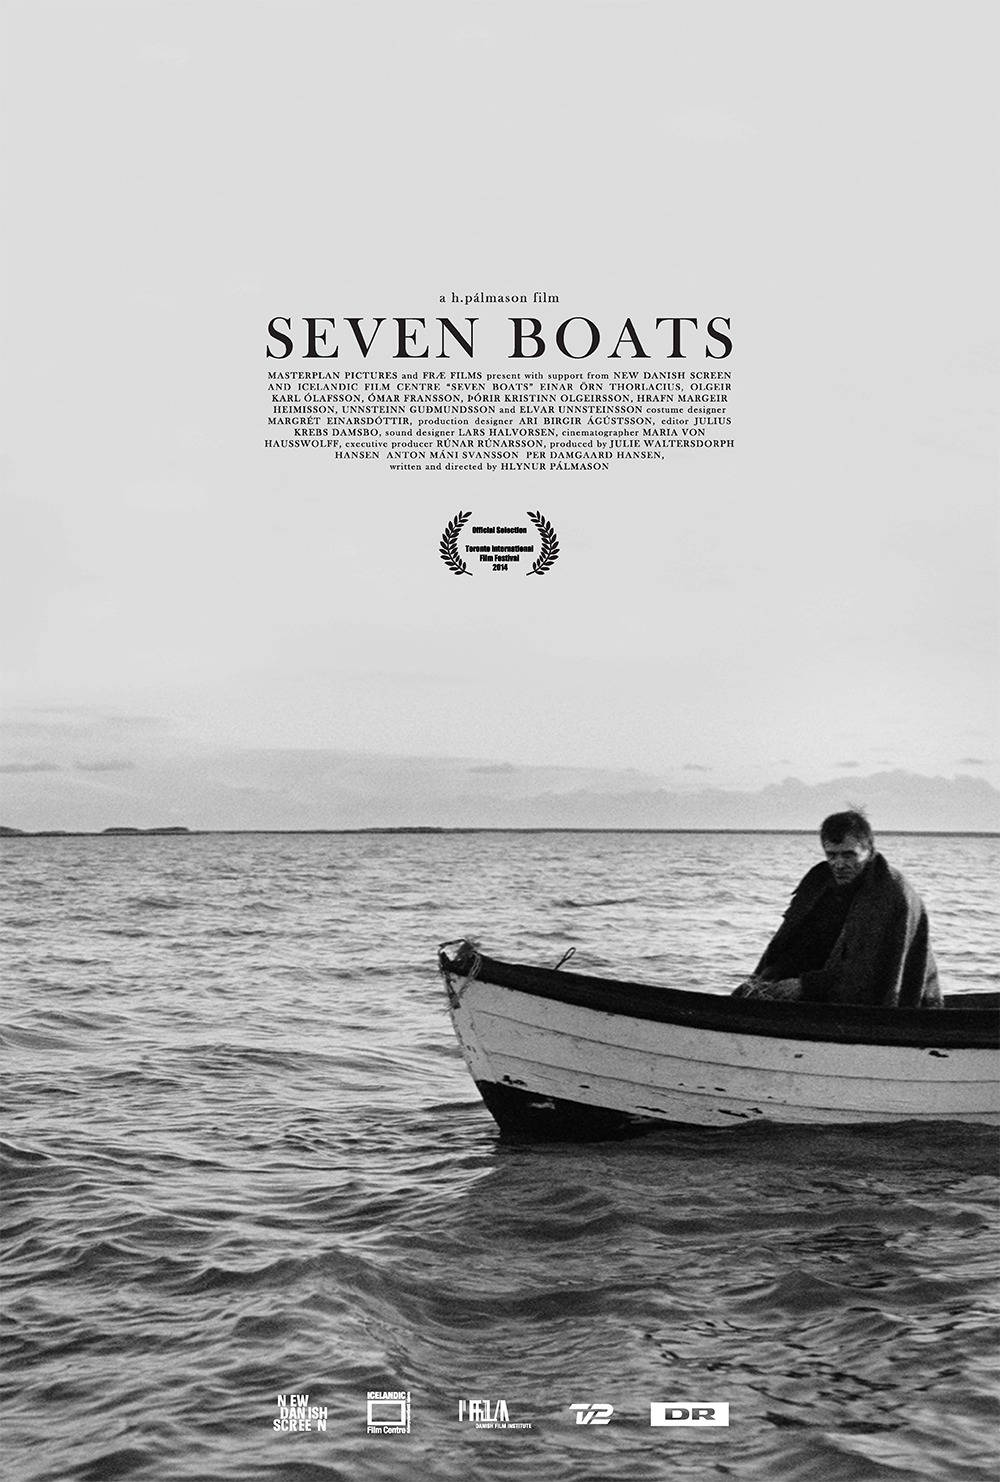 seven boats / poster / design: dimms